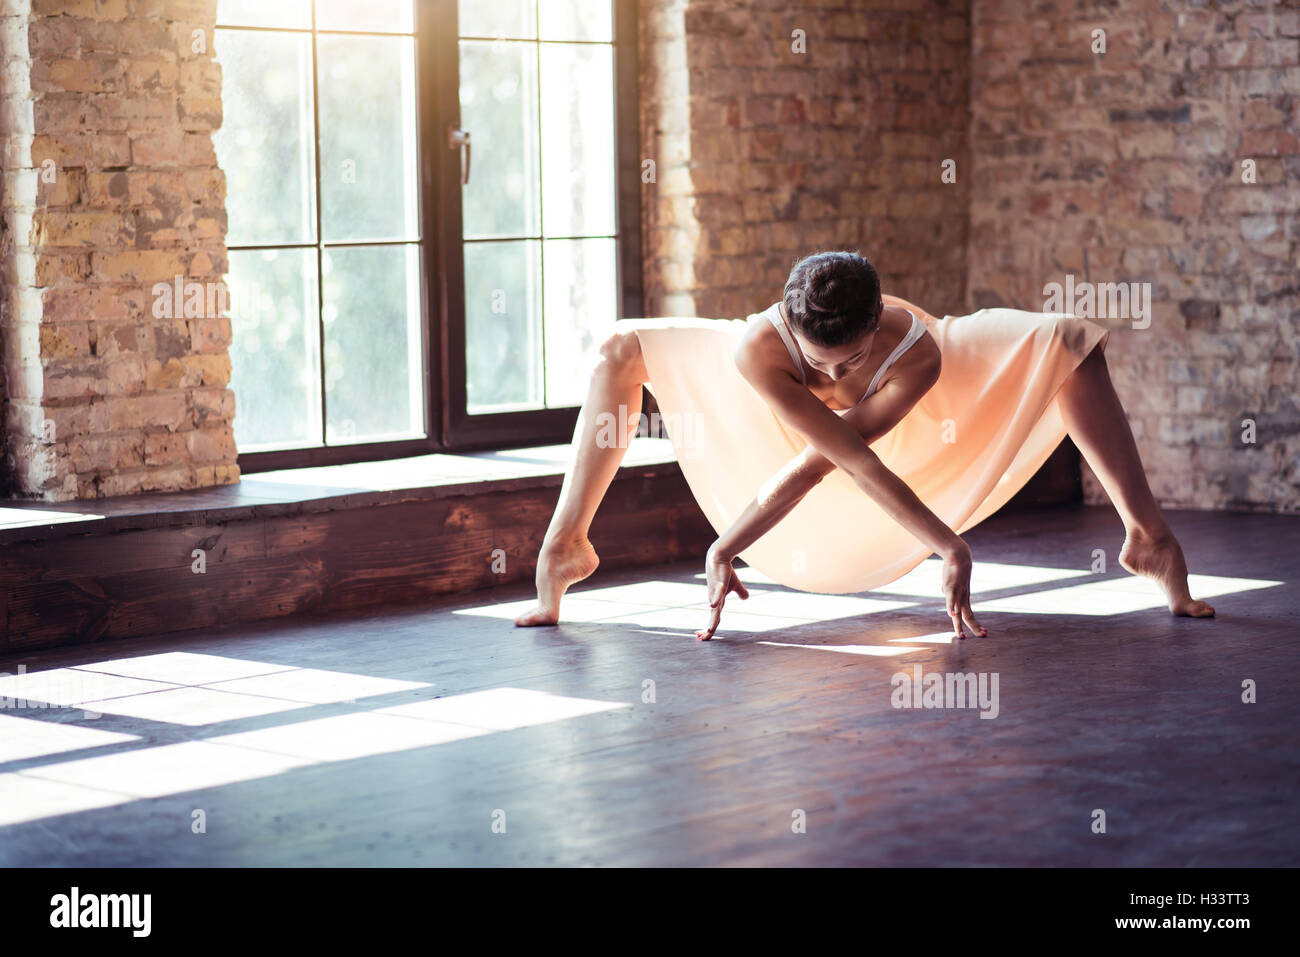 Professional skillful woman dancing - Stock Image